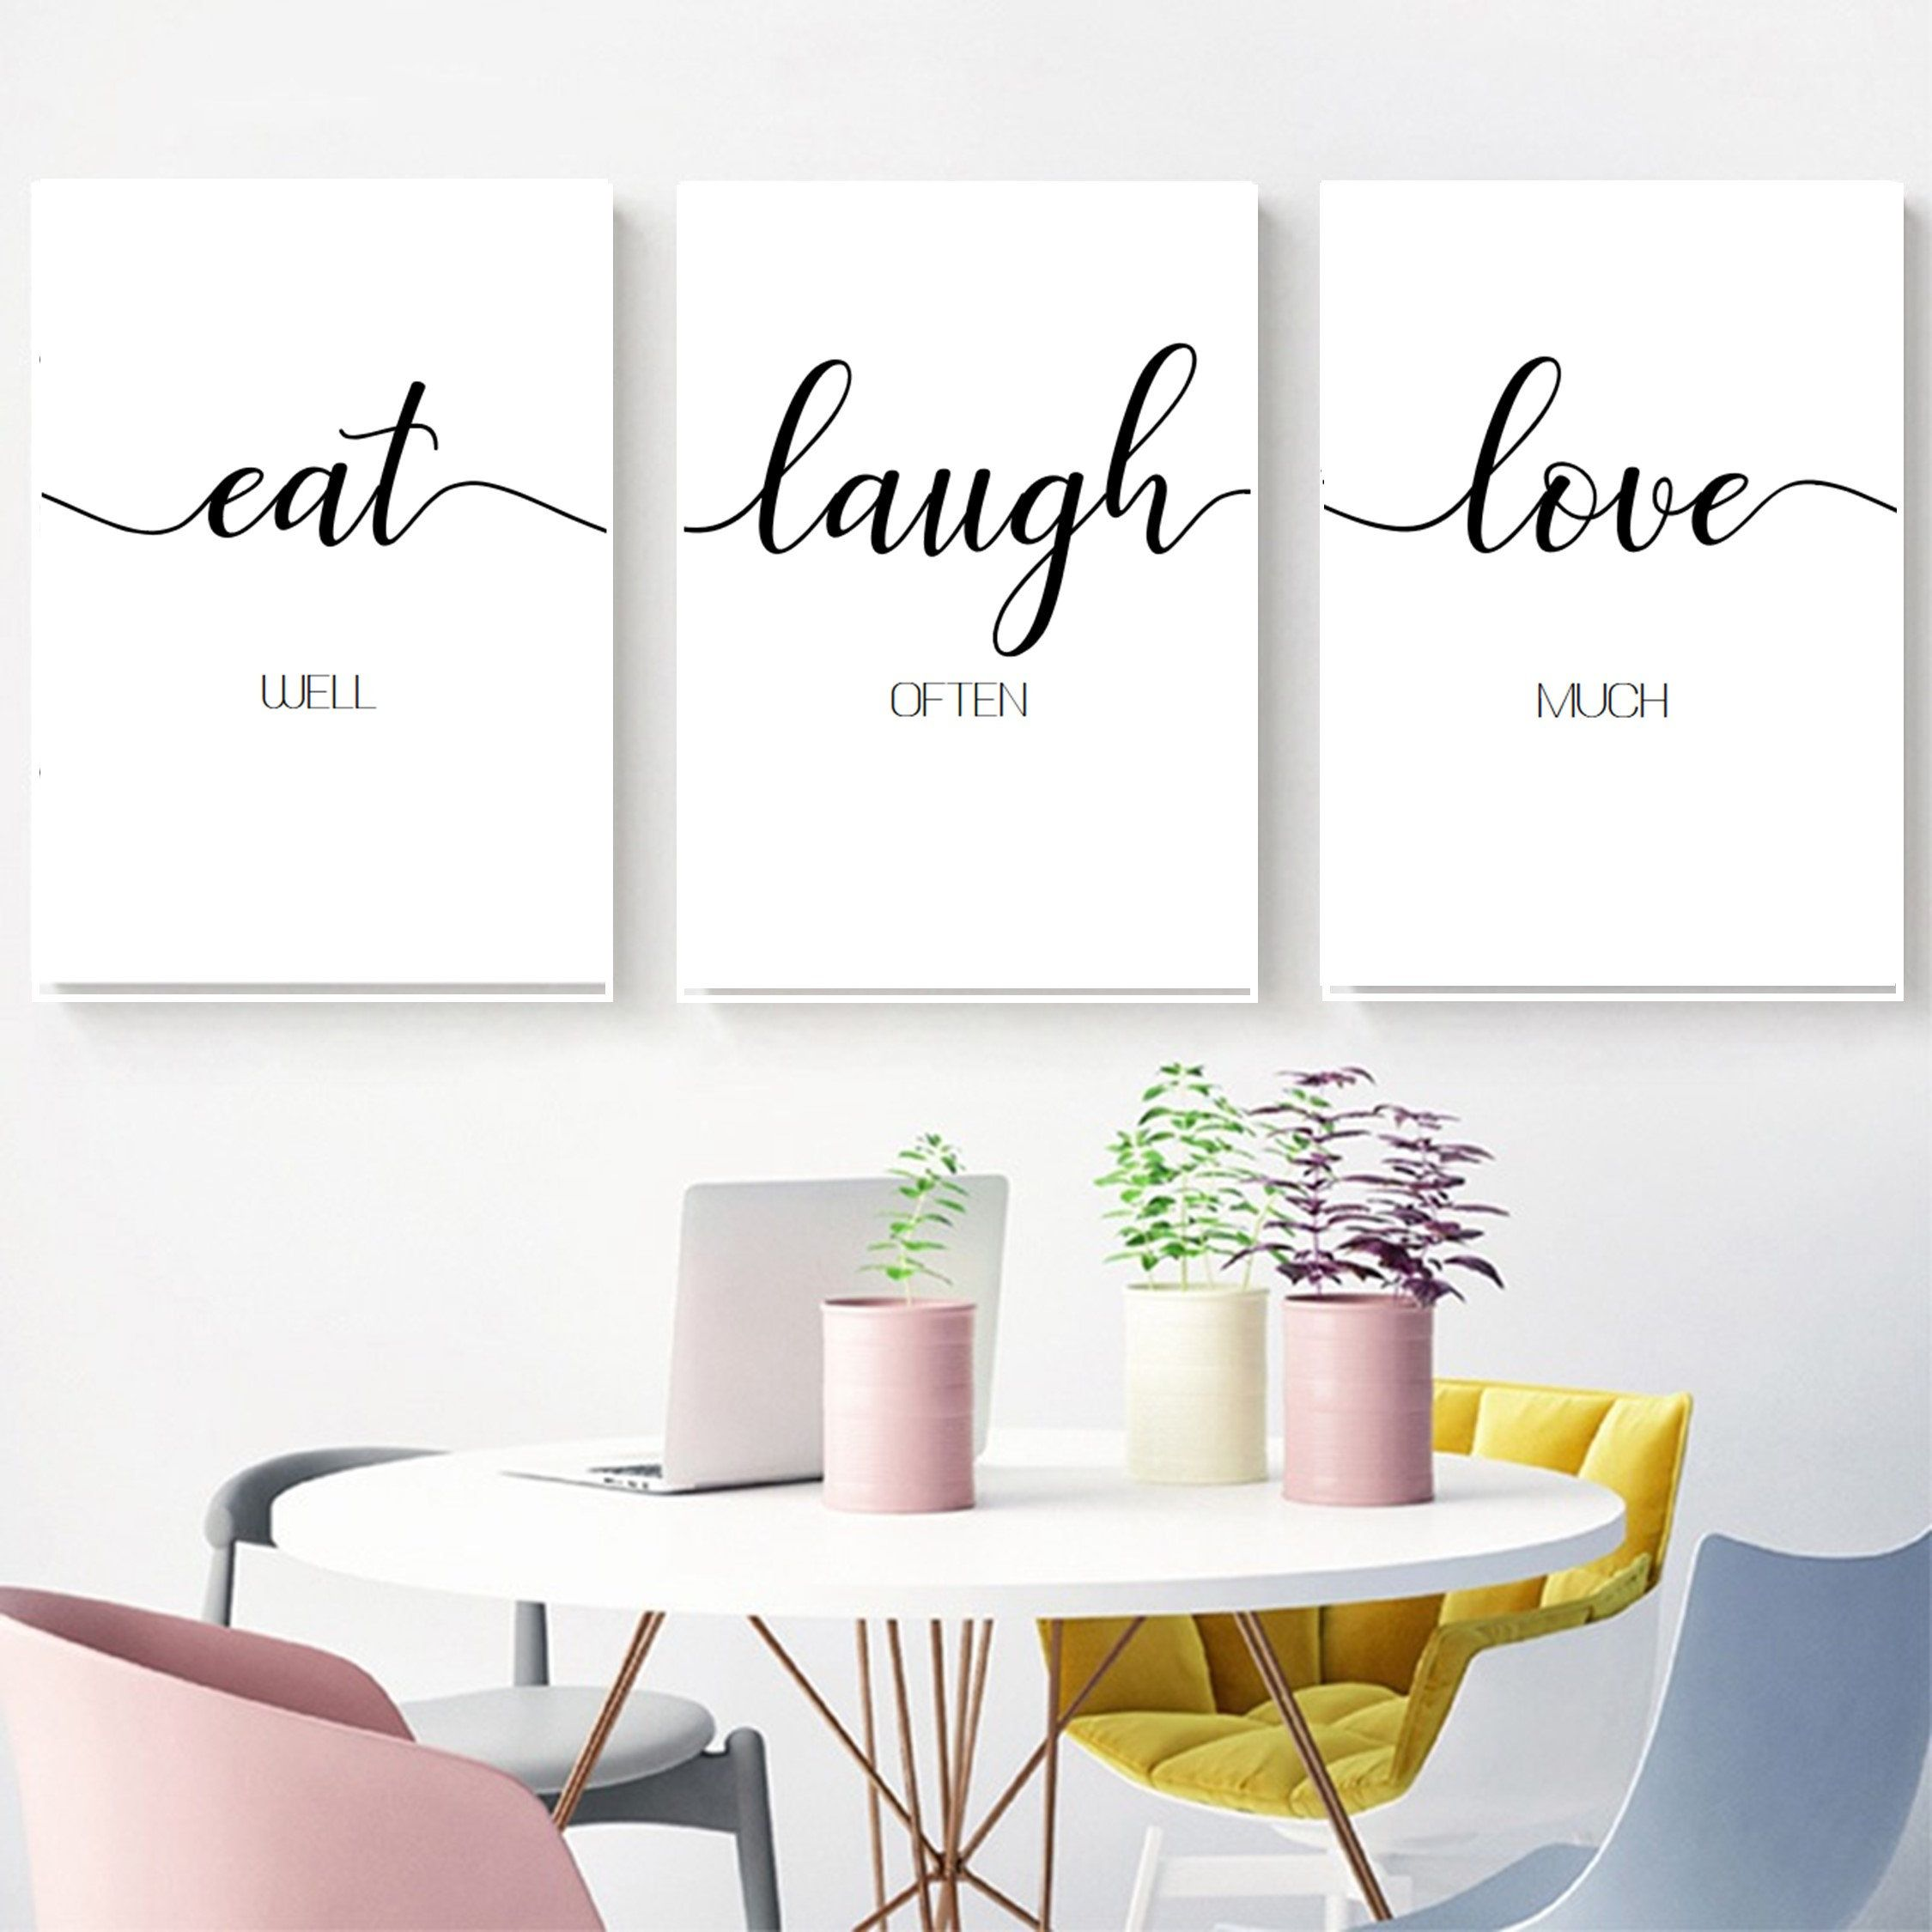 Family Wall Decor Modern Kitchen Art Set Of 3 Prints Dining Etsy In 2020 Kitchen Art Set Modern Kitchen Art Modern Kitchen Wall Art